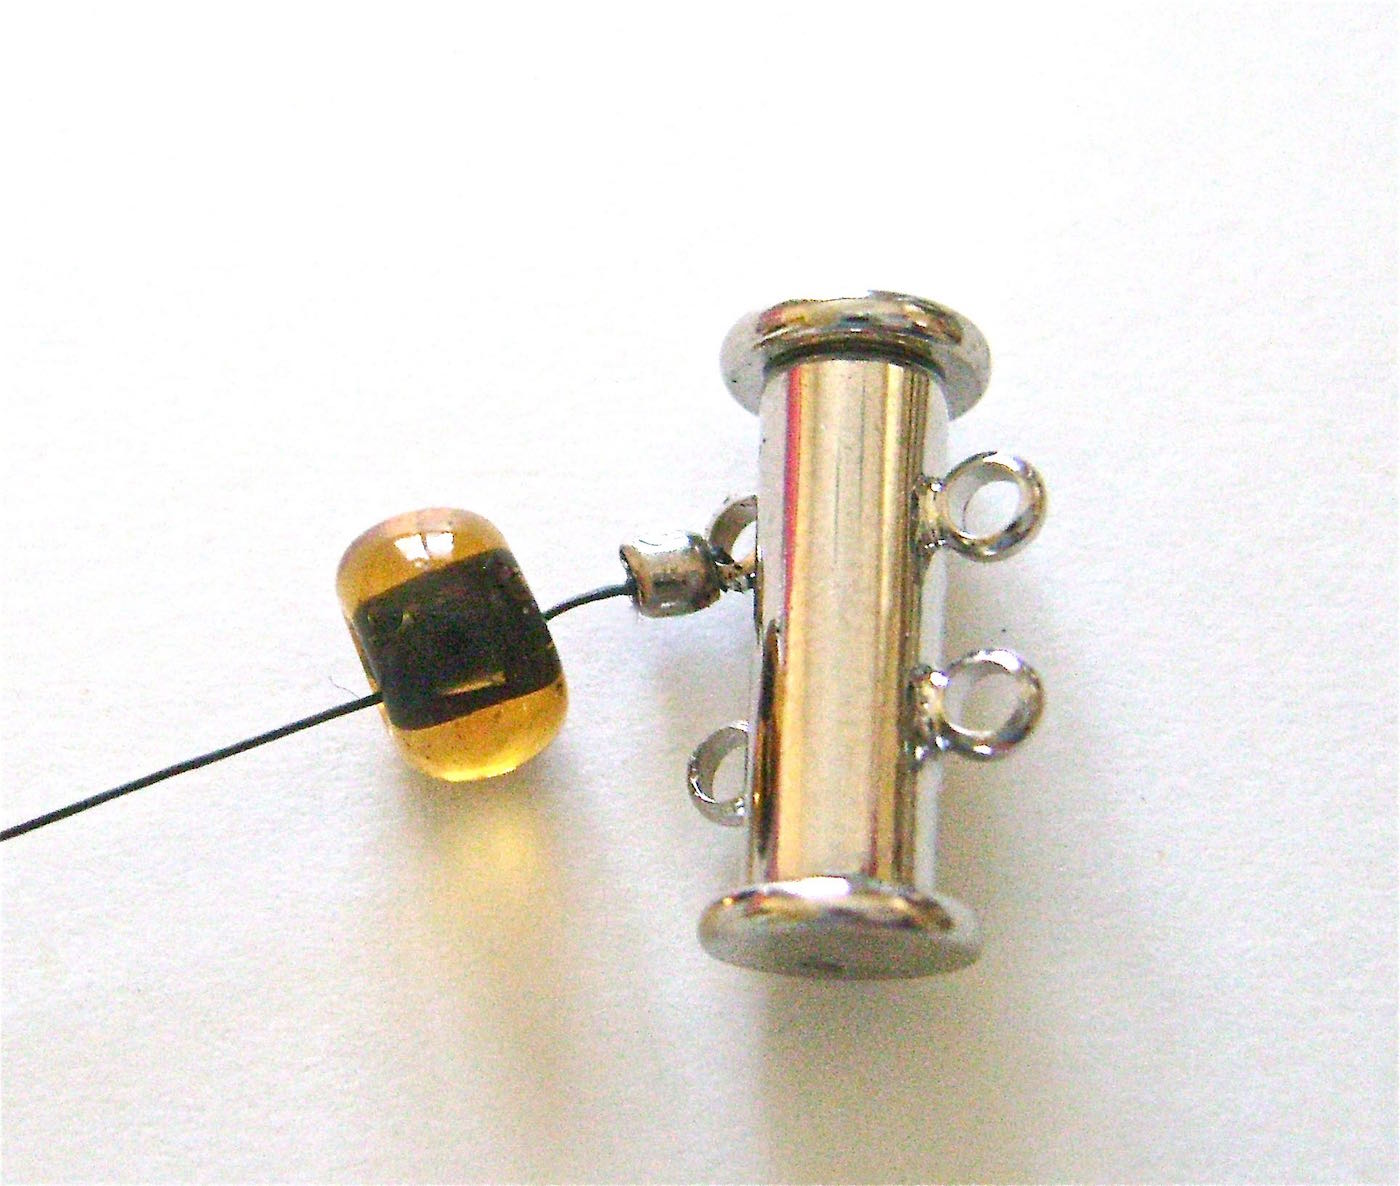 step 2 - Attach a 6mm round bead with a hole large enough to slip over the crimp bead.